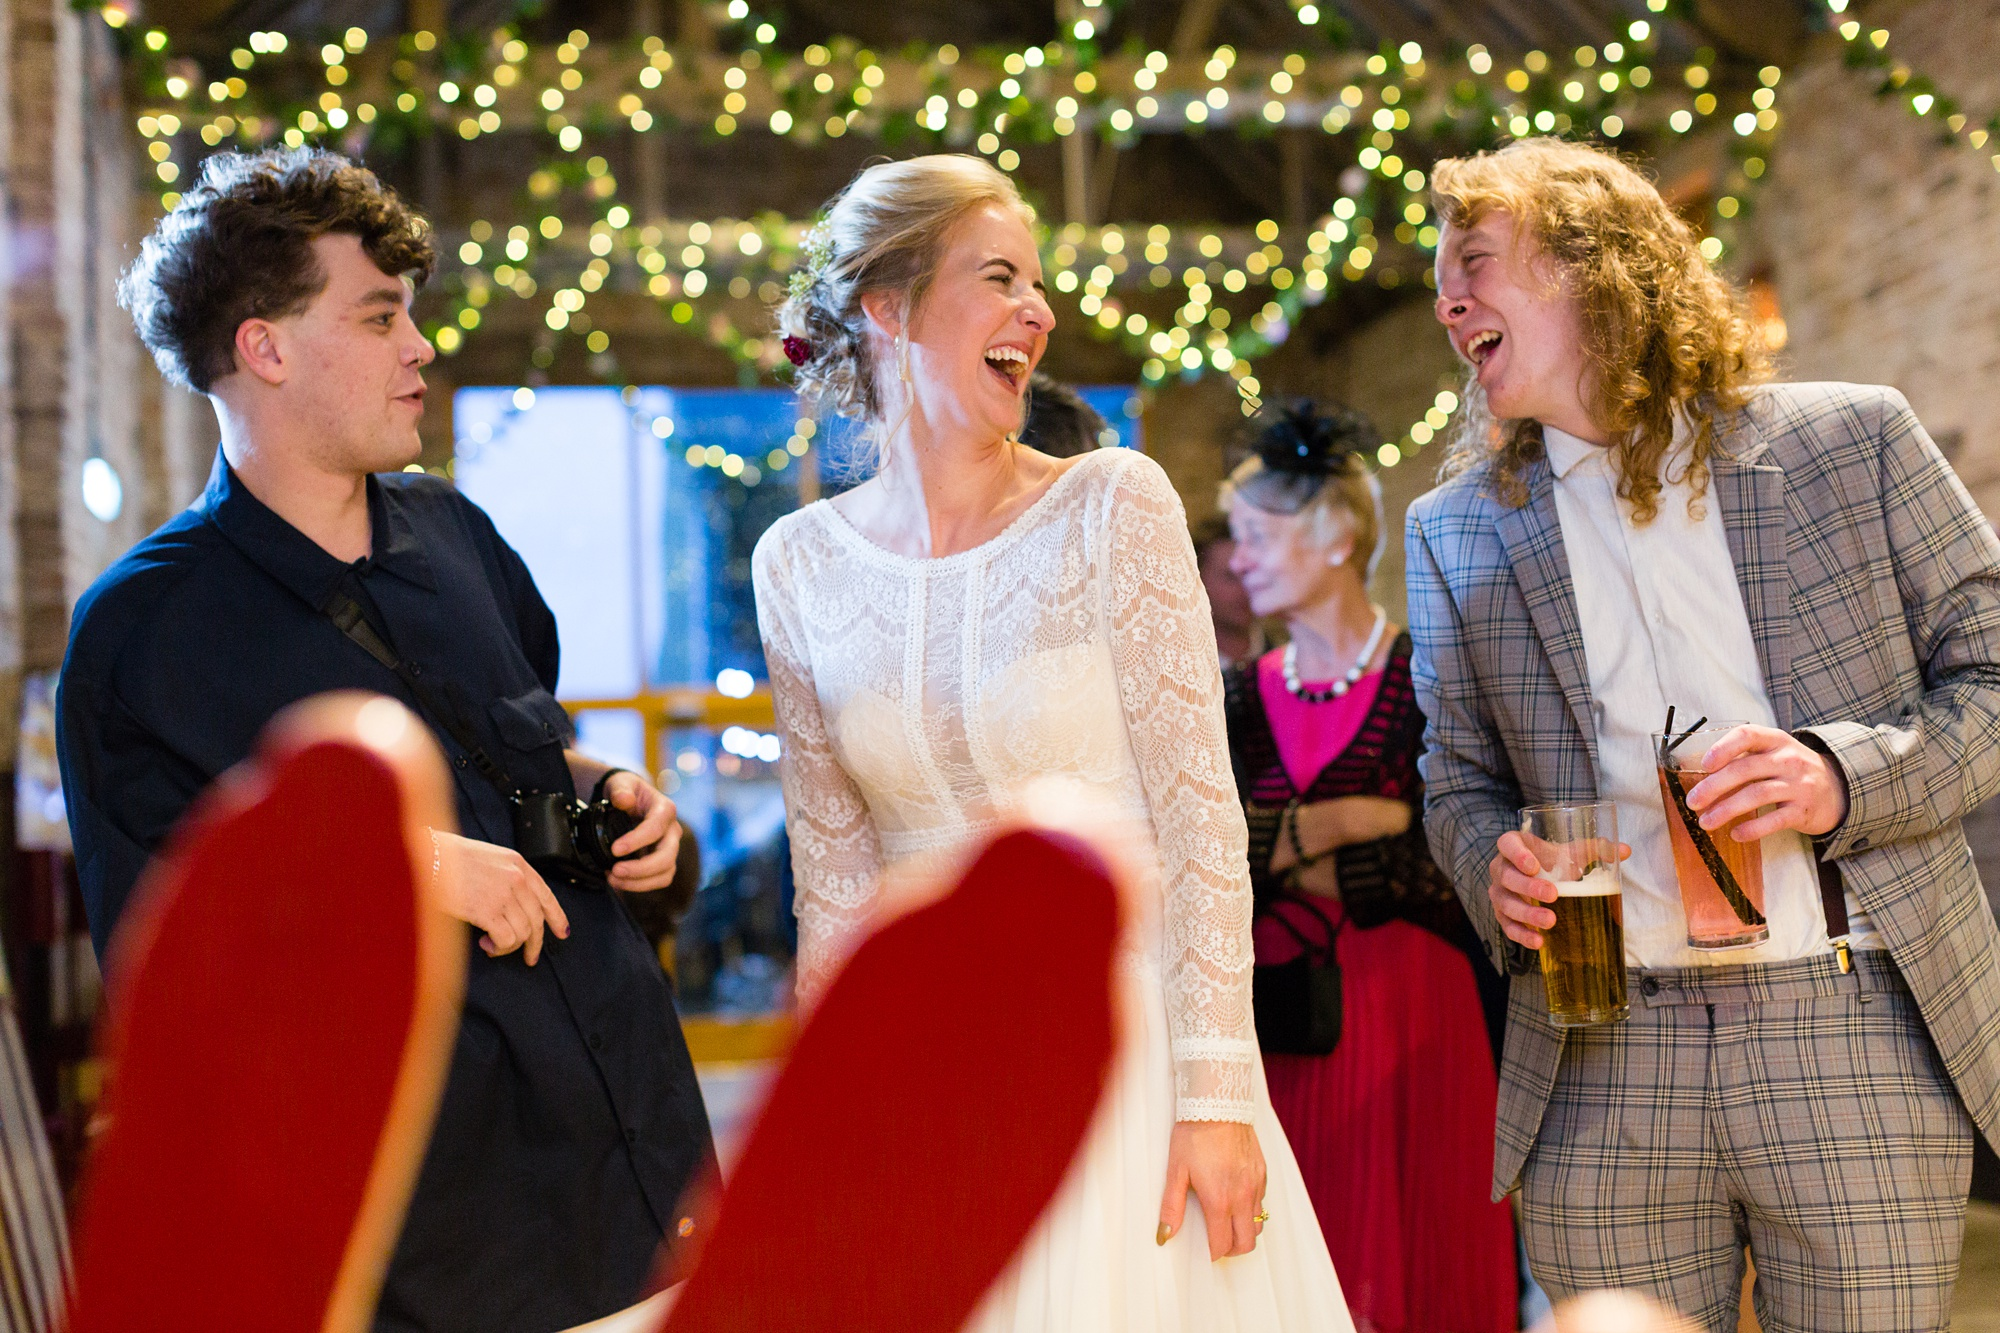 Bride laughs with friends and family Barmbyfield Barn Wedding Photography